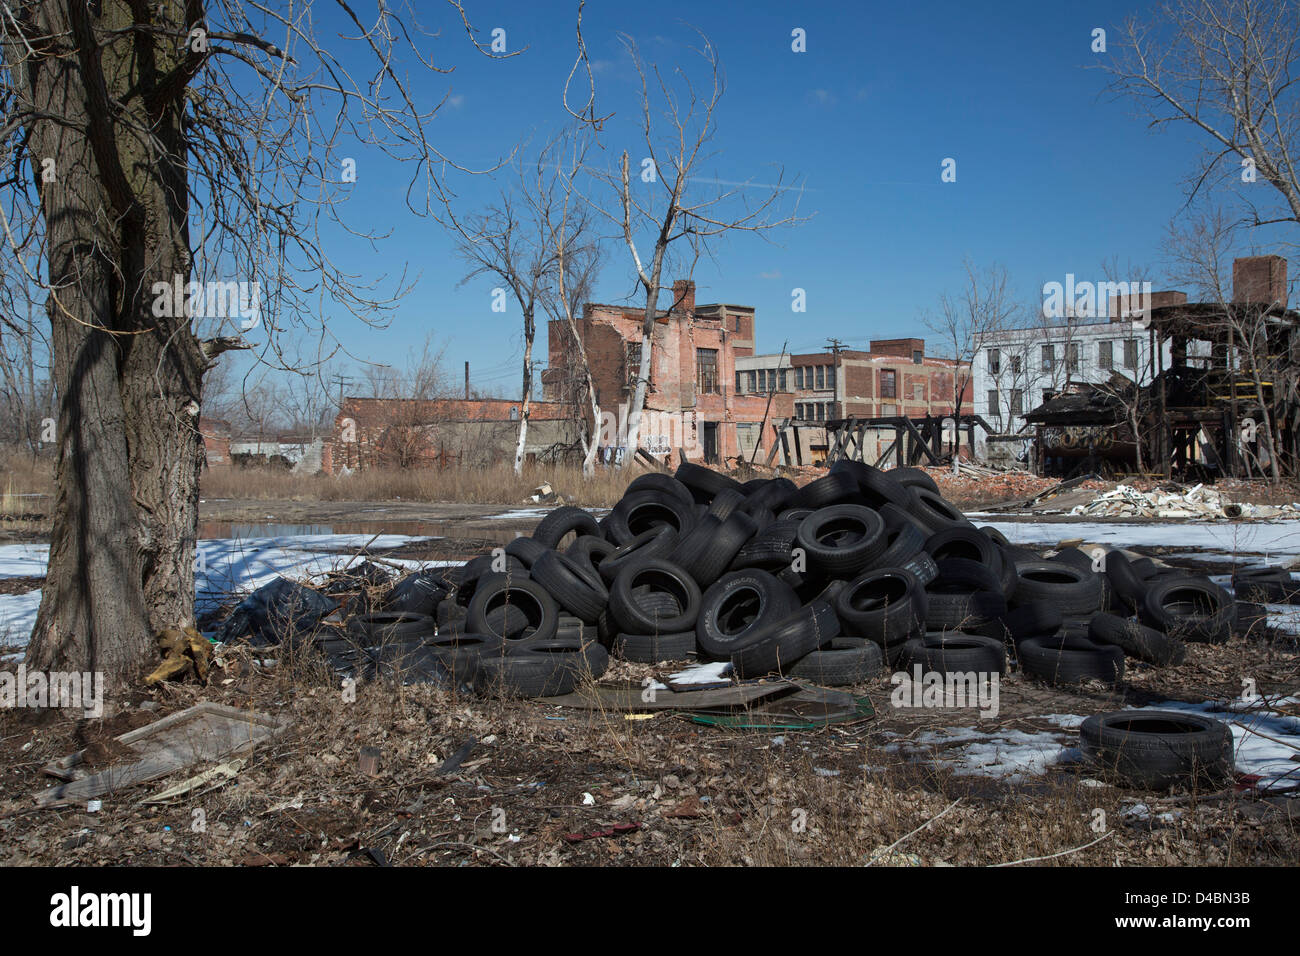 Detroit, Michigan - Used tires dumped on a vacant lot next to derelict buildings. - Stock Image